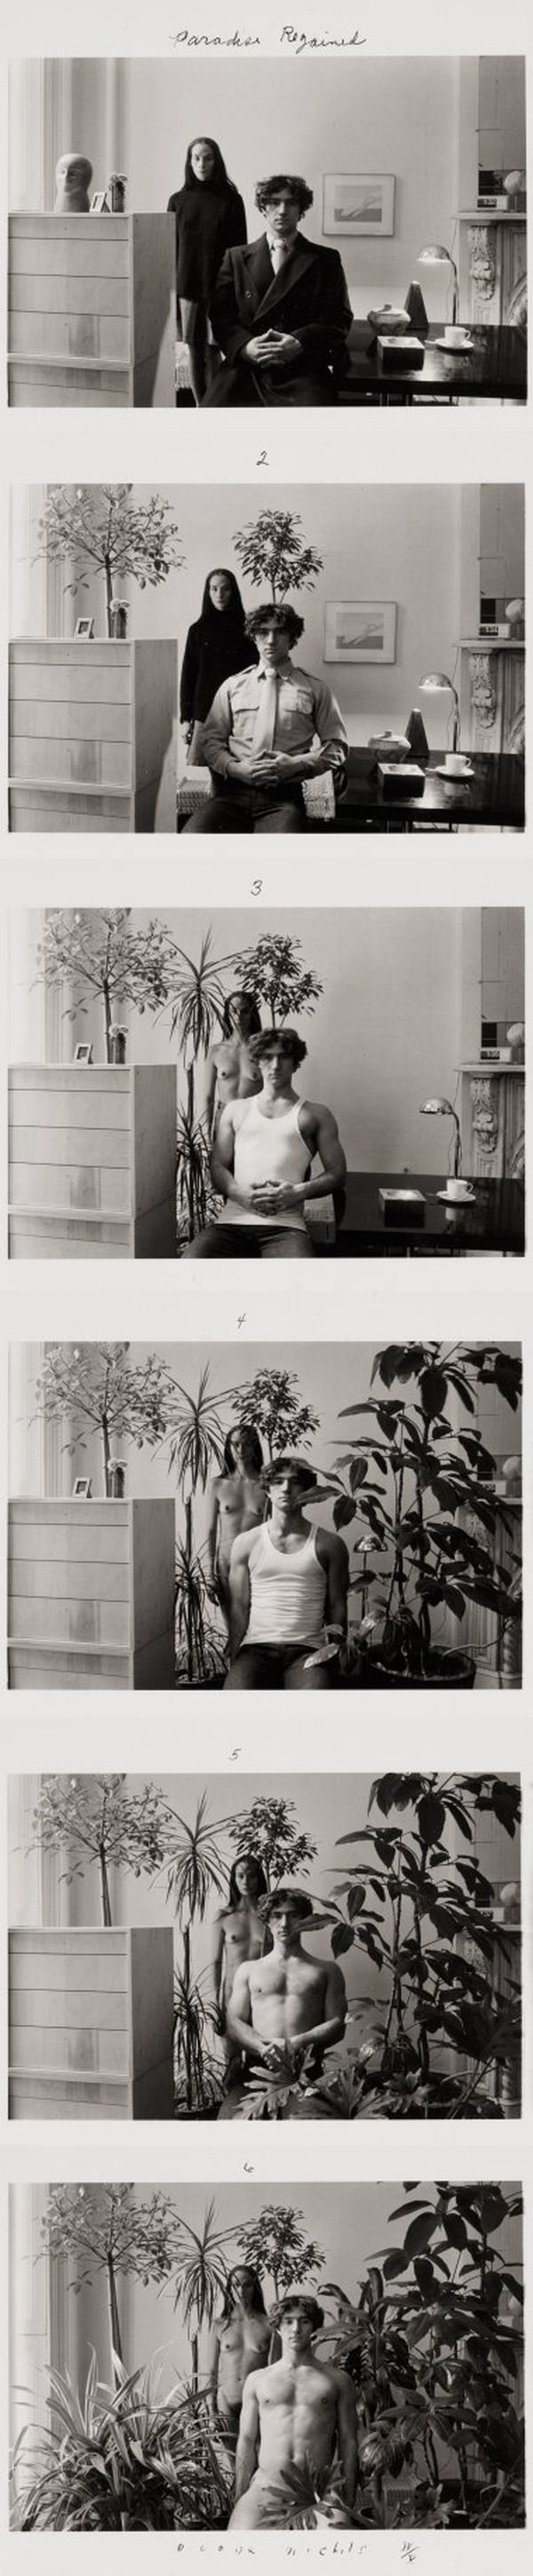 Les séquences photographiques de Duane Michals sequence photographie duane mickeals 07